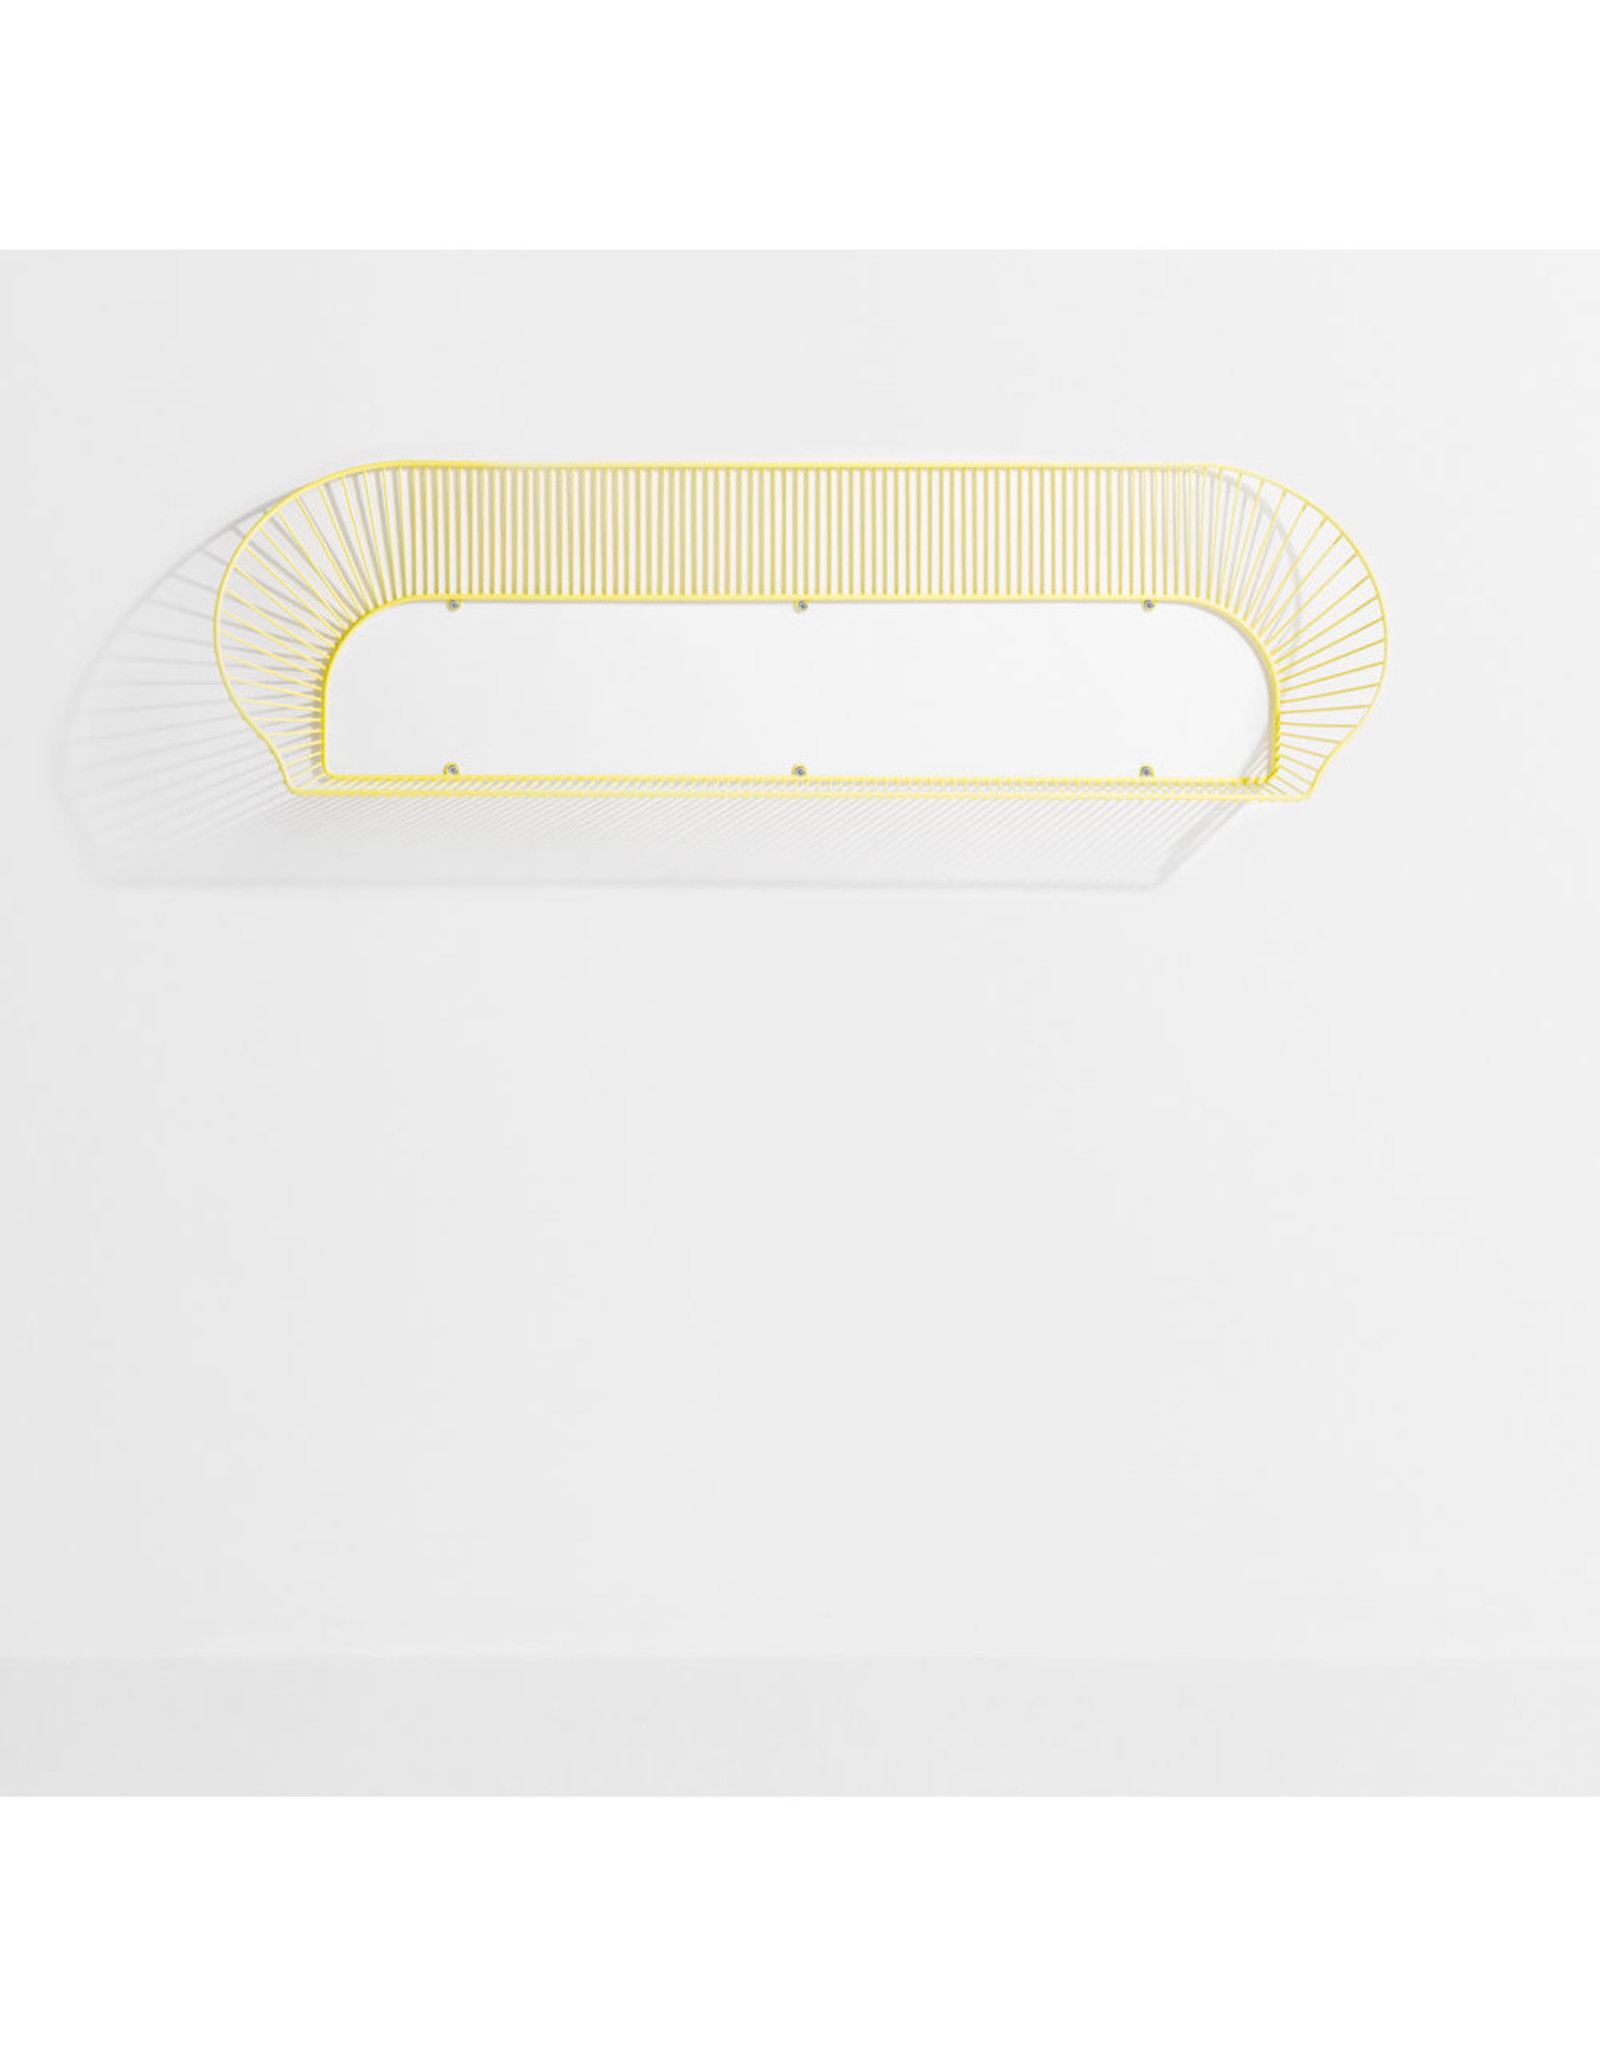 Petite Friture Petite Friture Loop Shelf Small